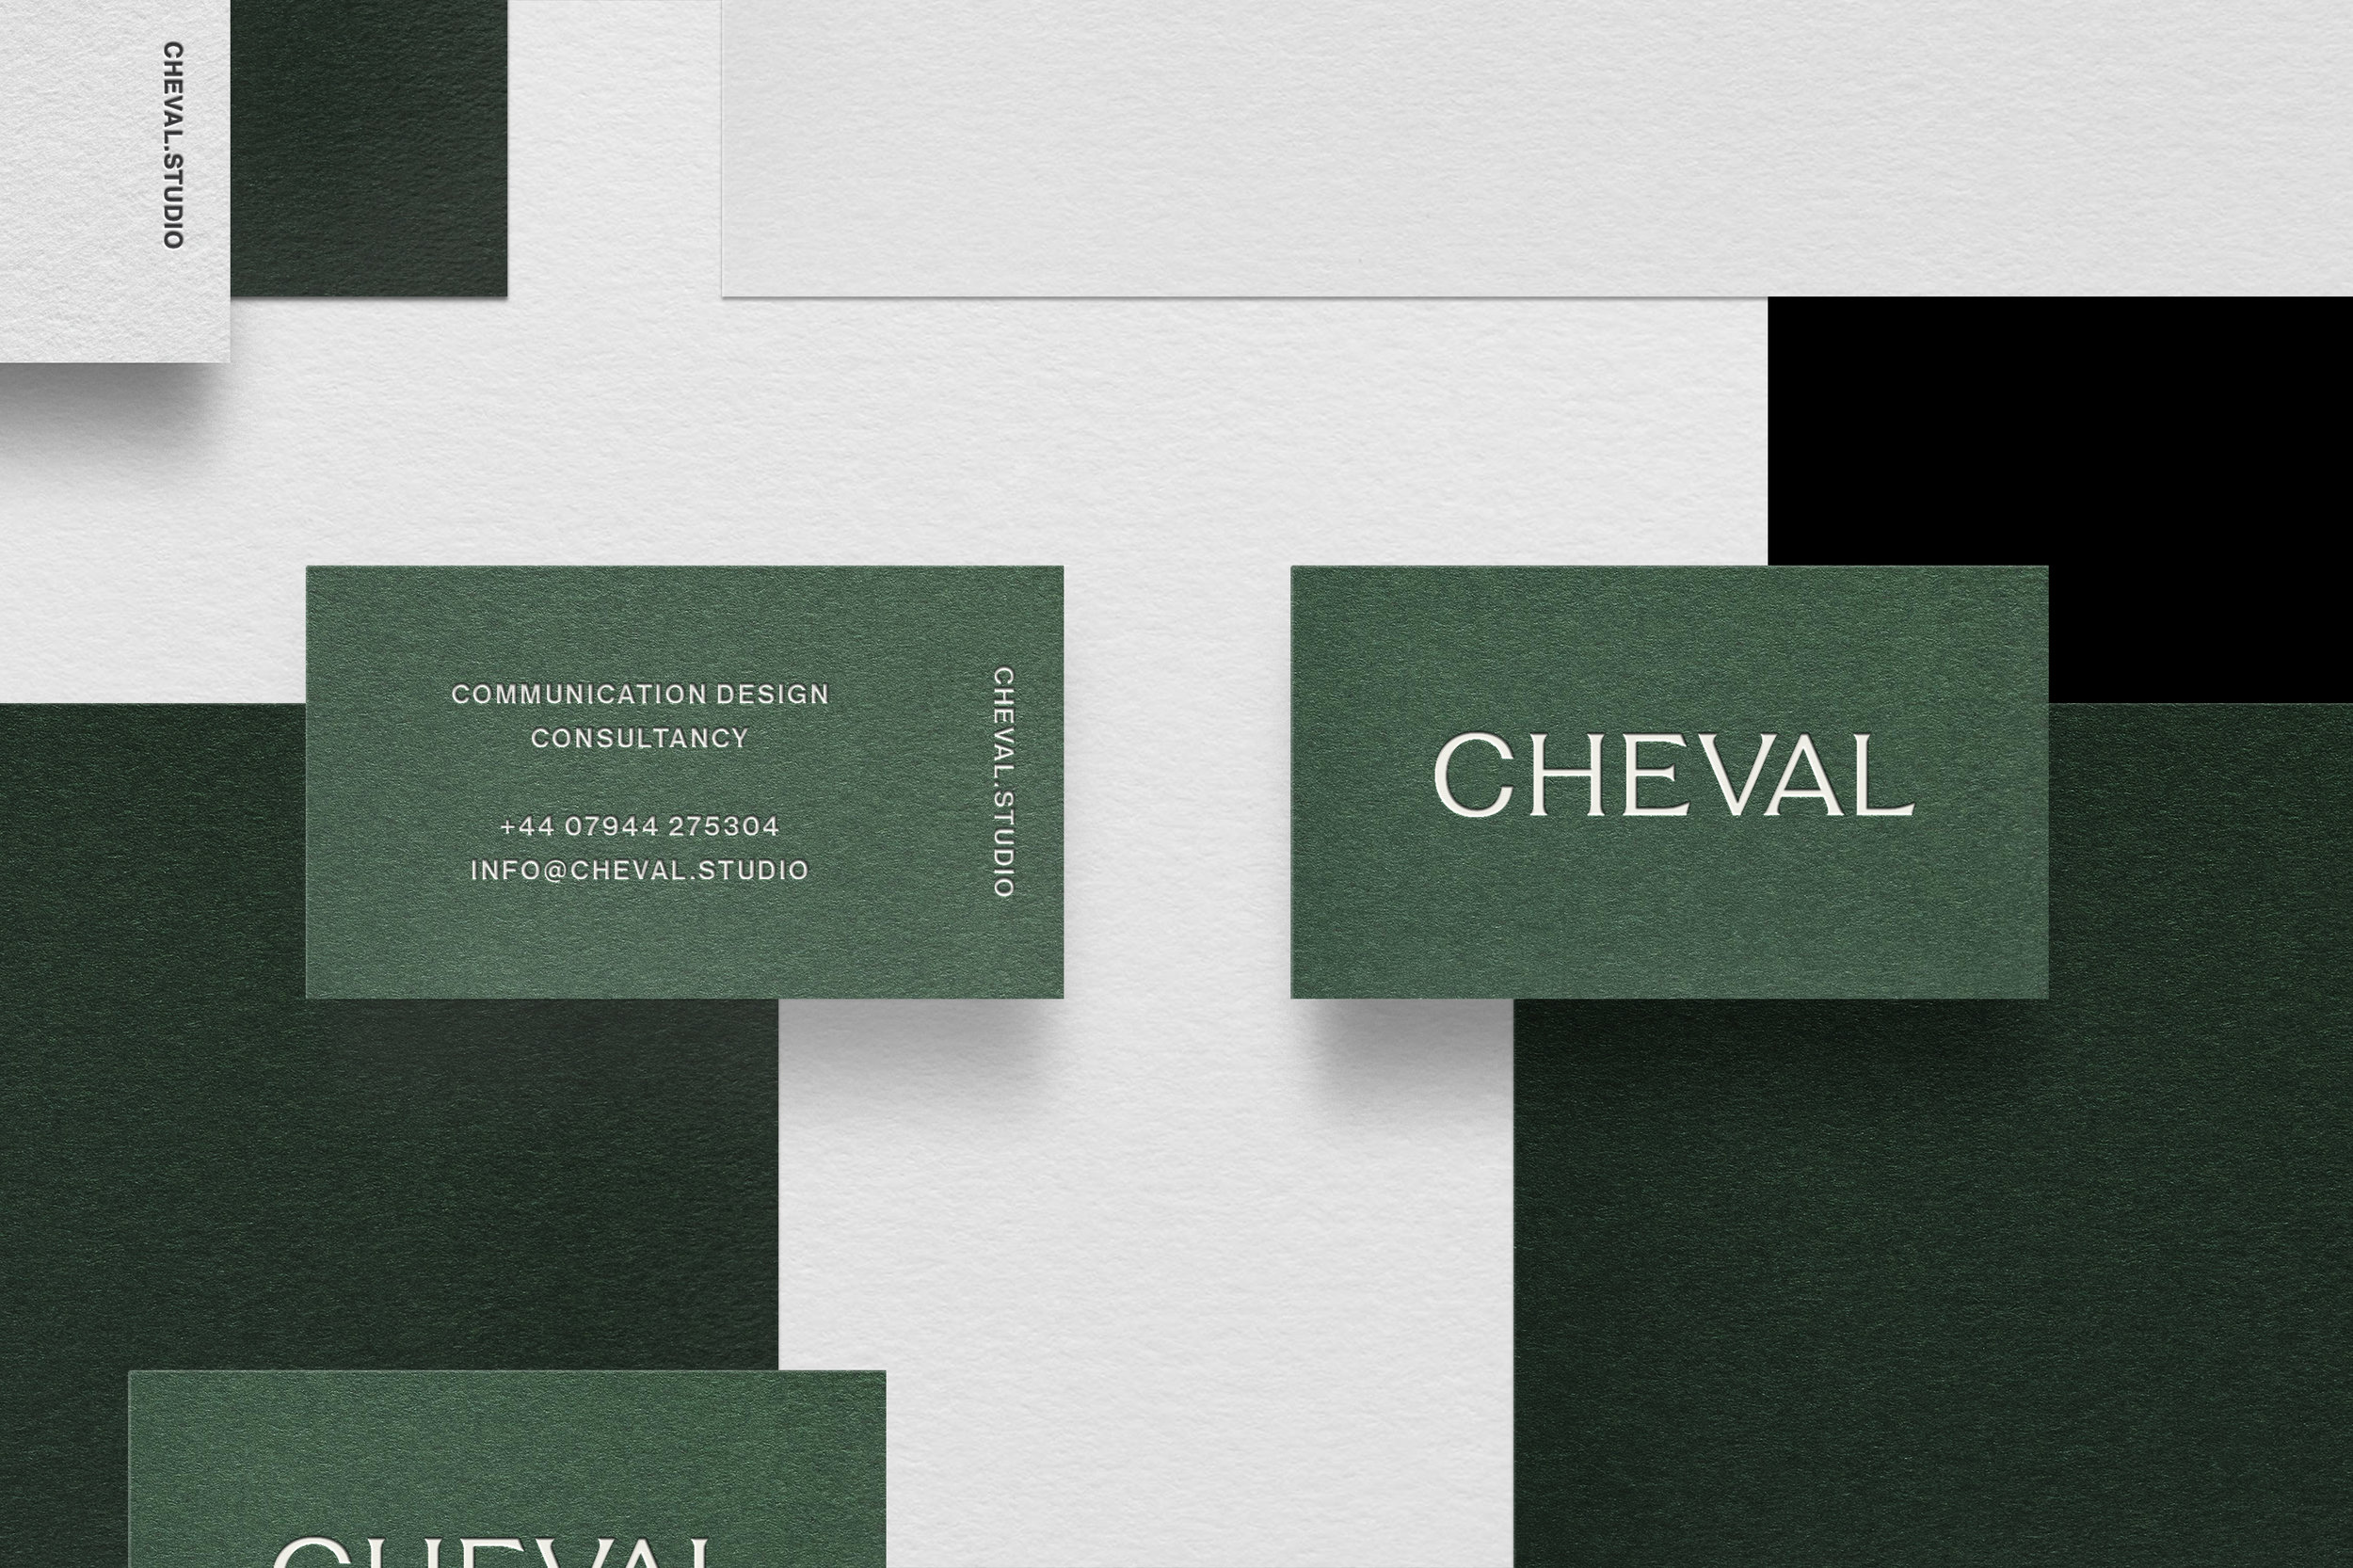 Cheval_BusinessCard.jpg